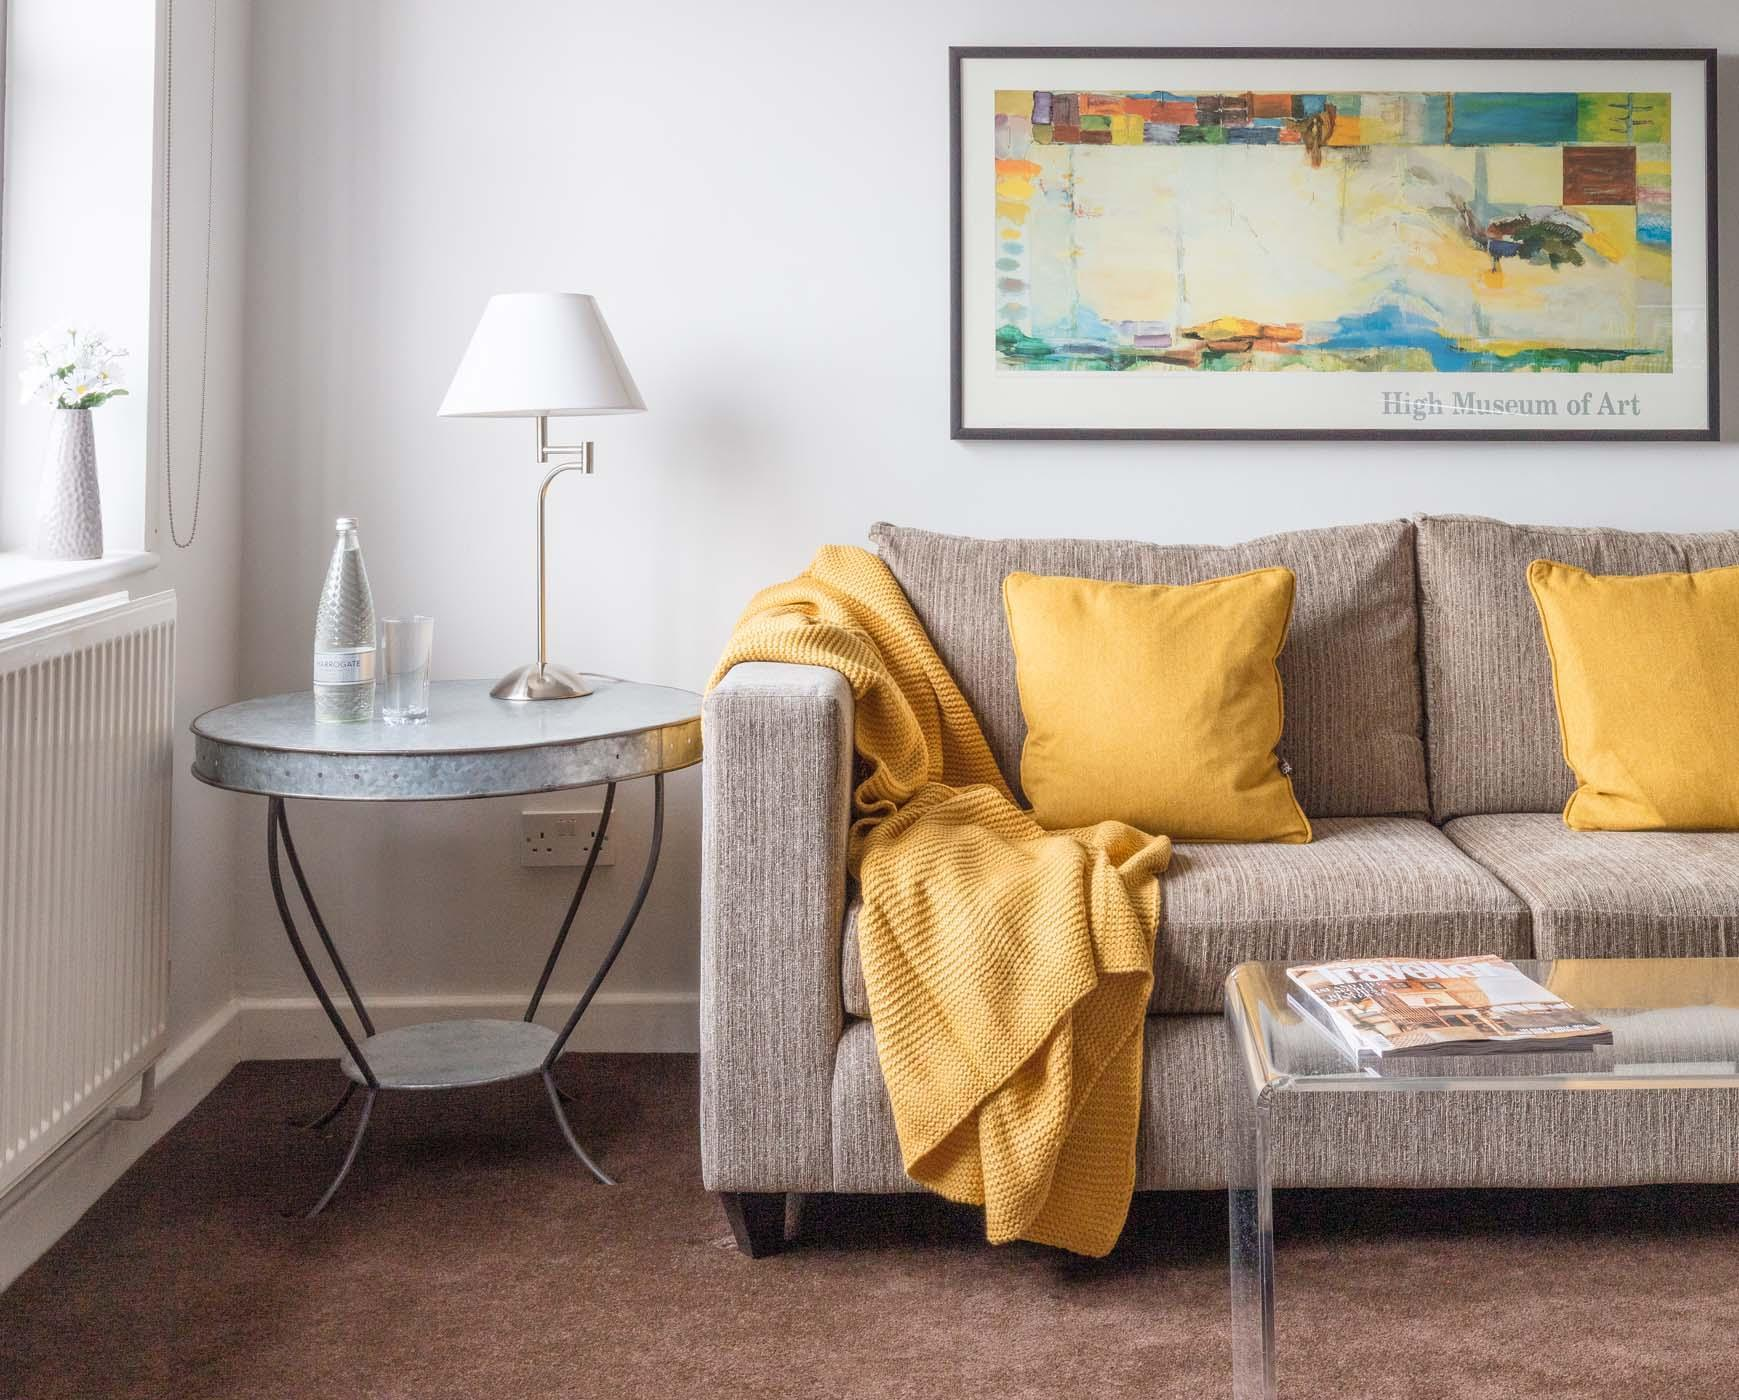 Delightful Saco Nottingham   The Ropewalk Apartment